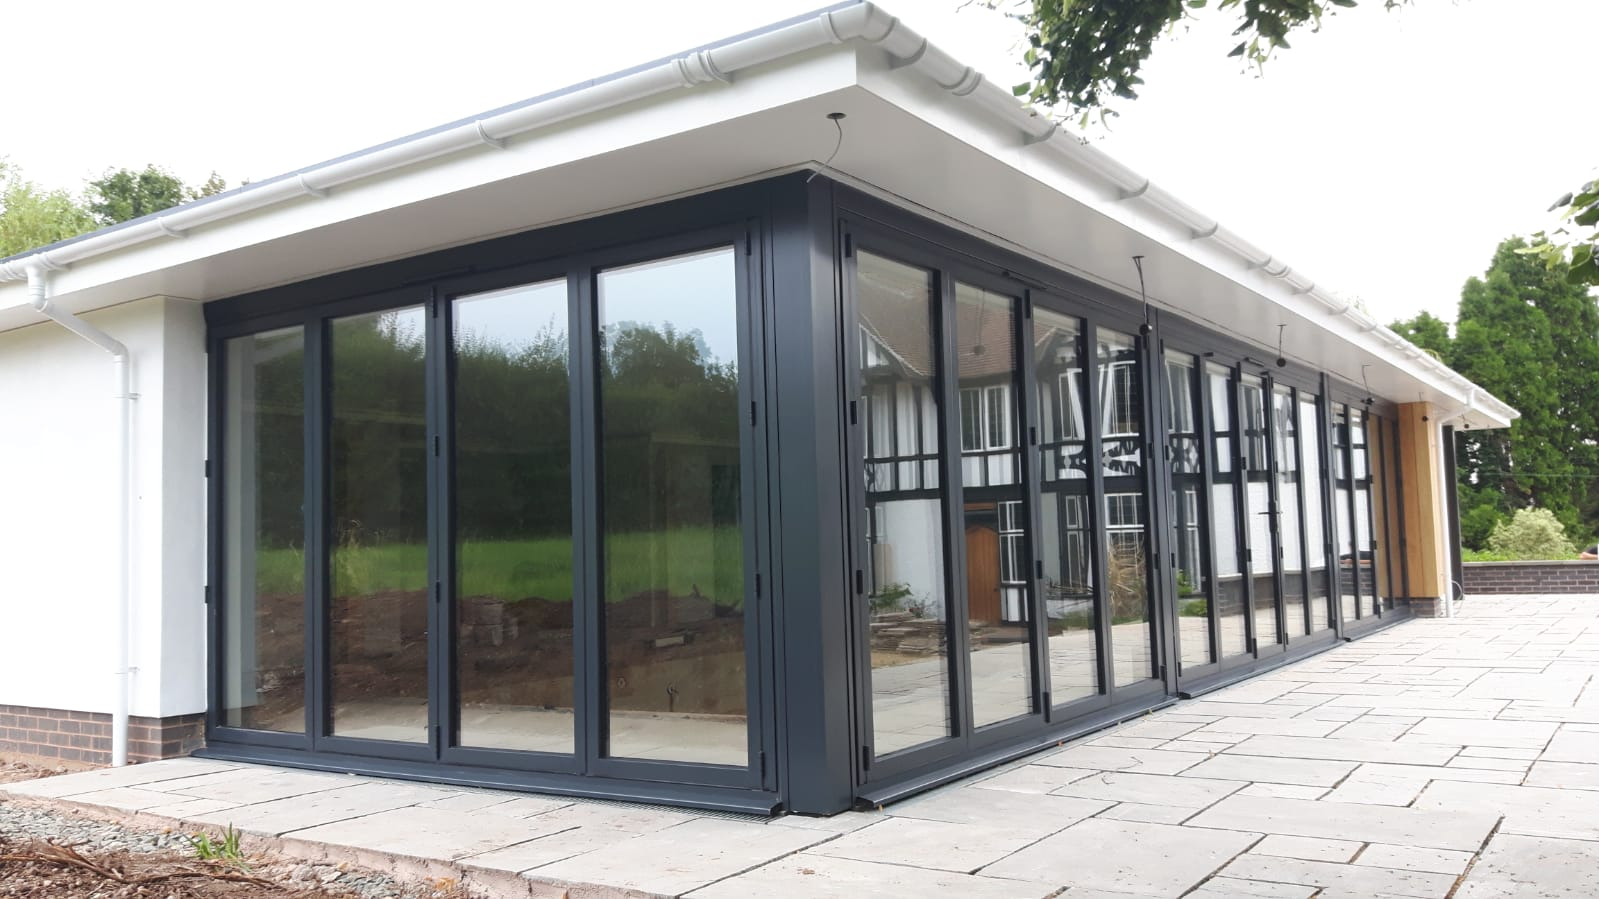 aluminium bi-folding doors in Anthracite grey